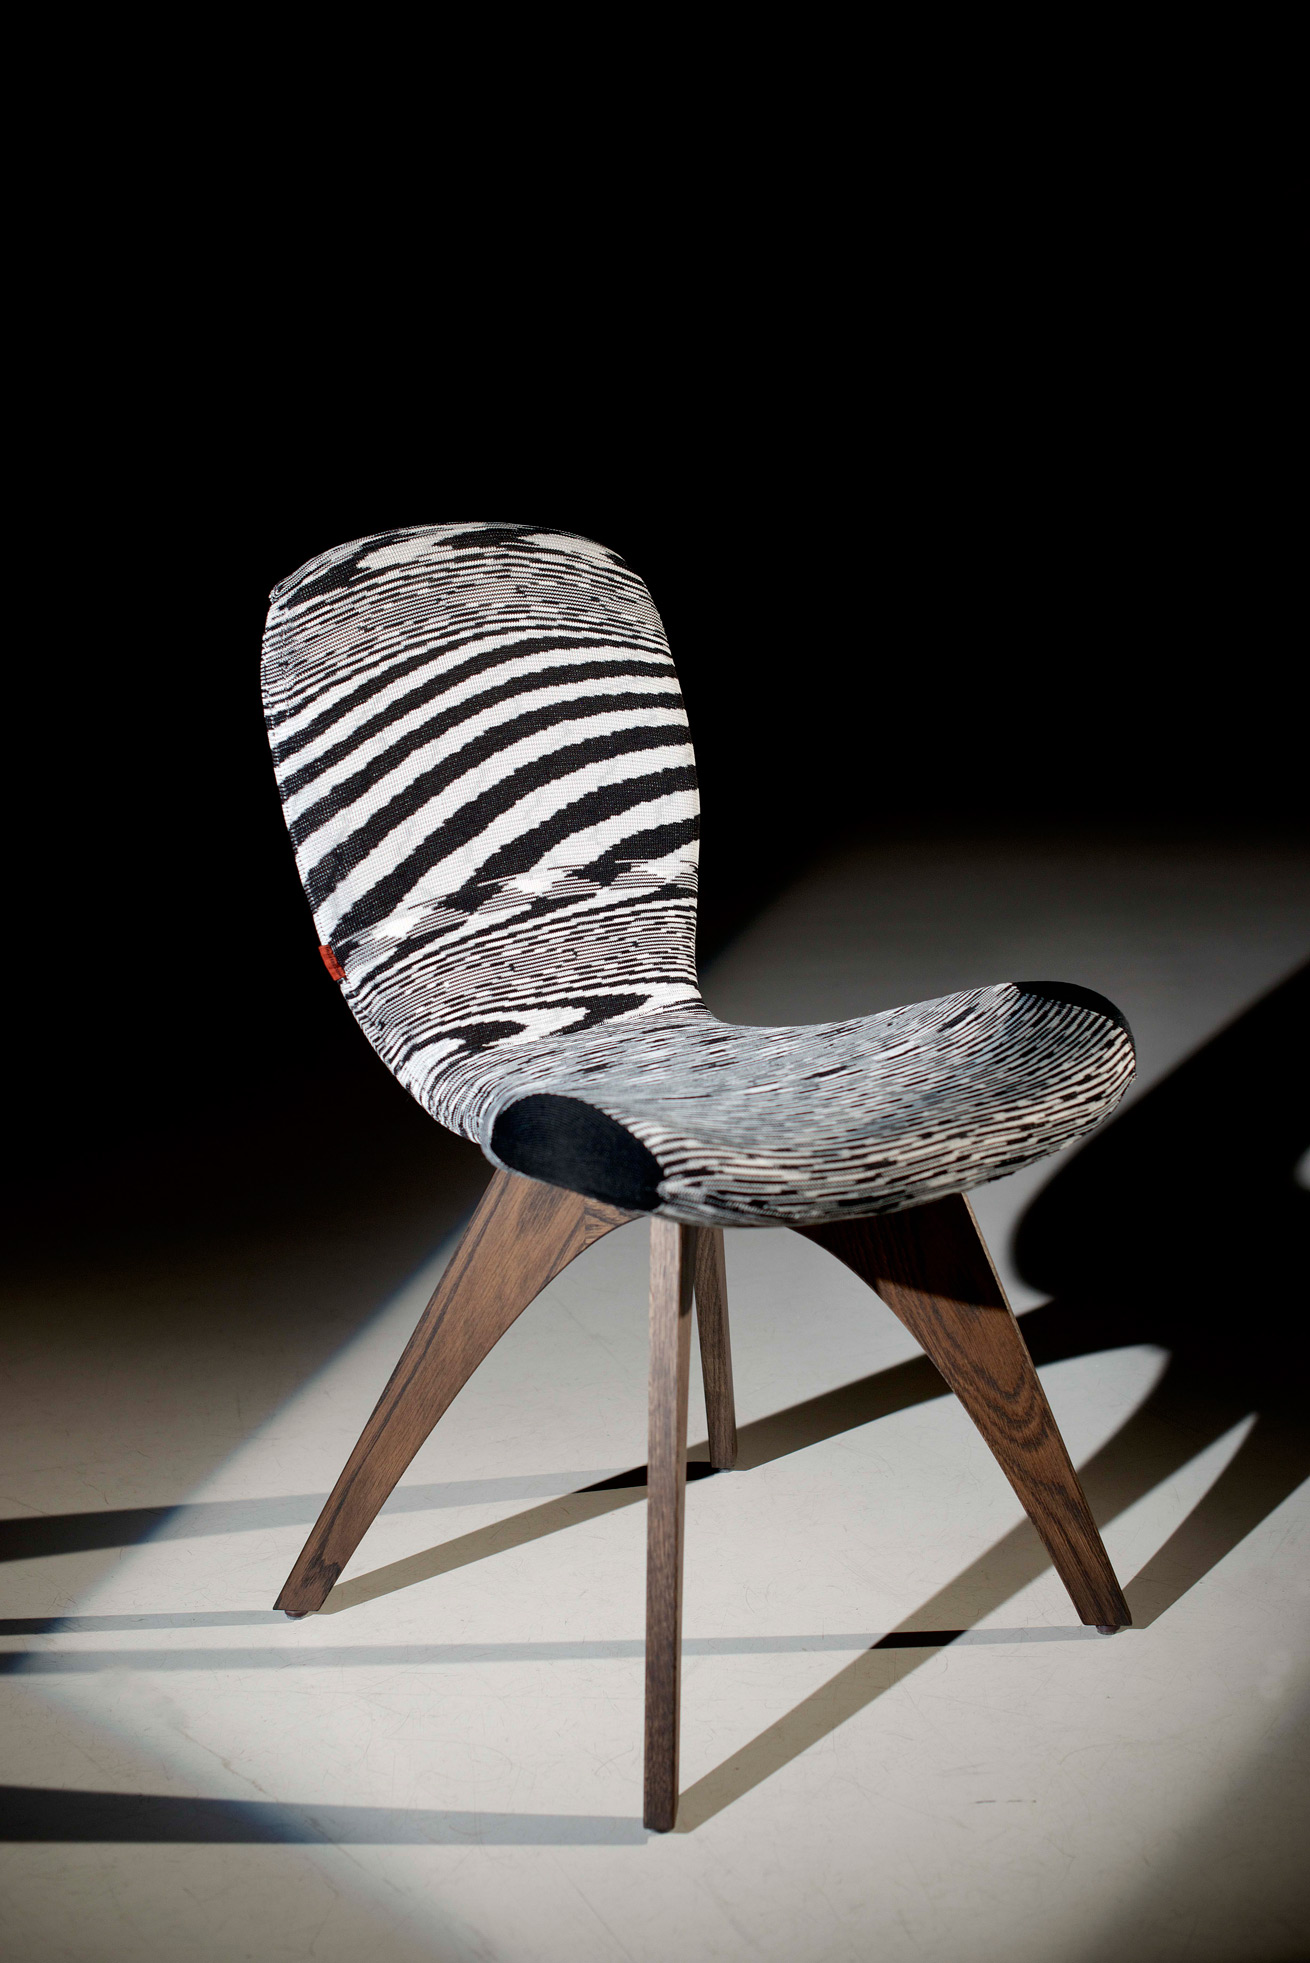 Patch Knit One with an innovative one-piece knitted cover for Artifort & MissoniHome